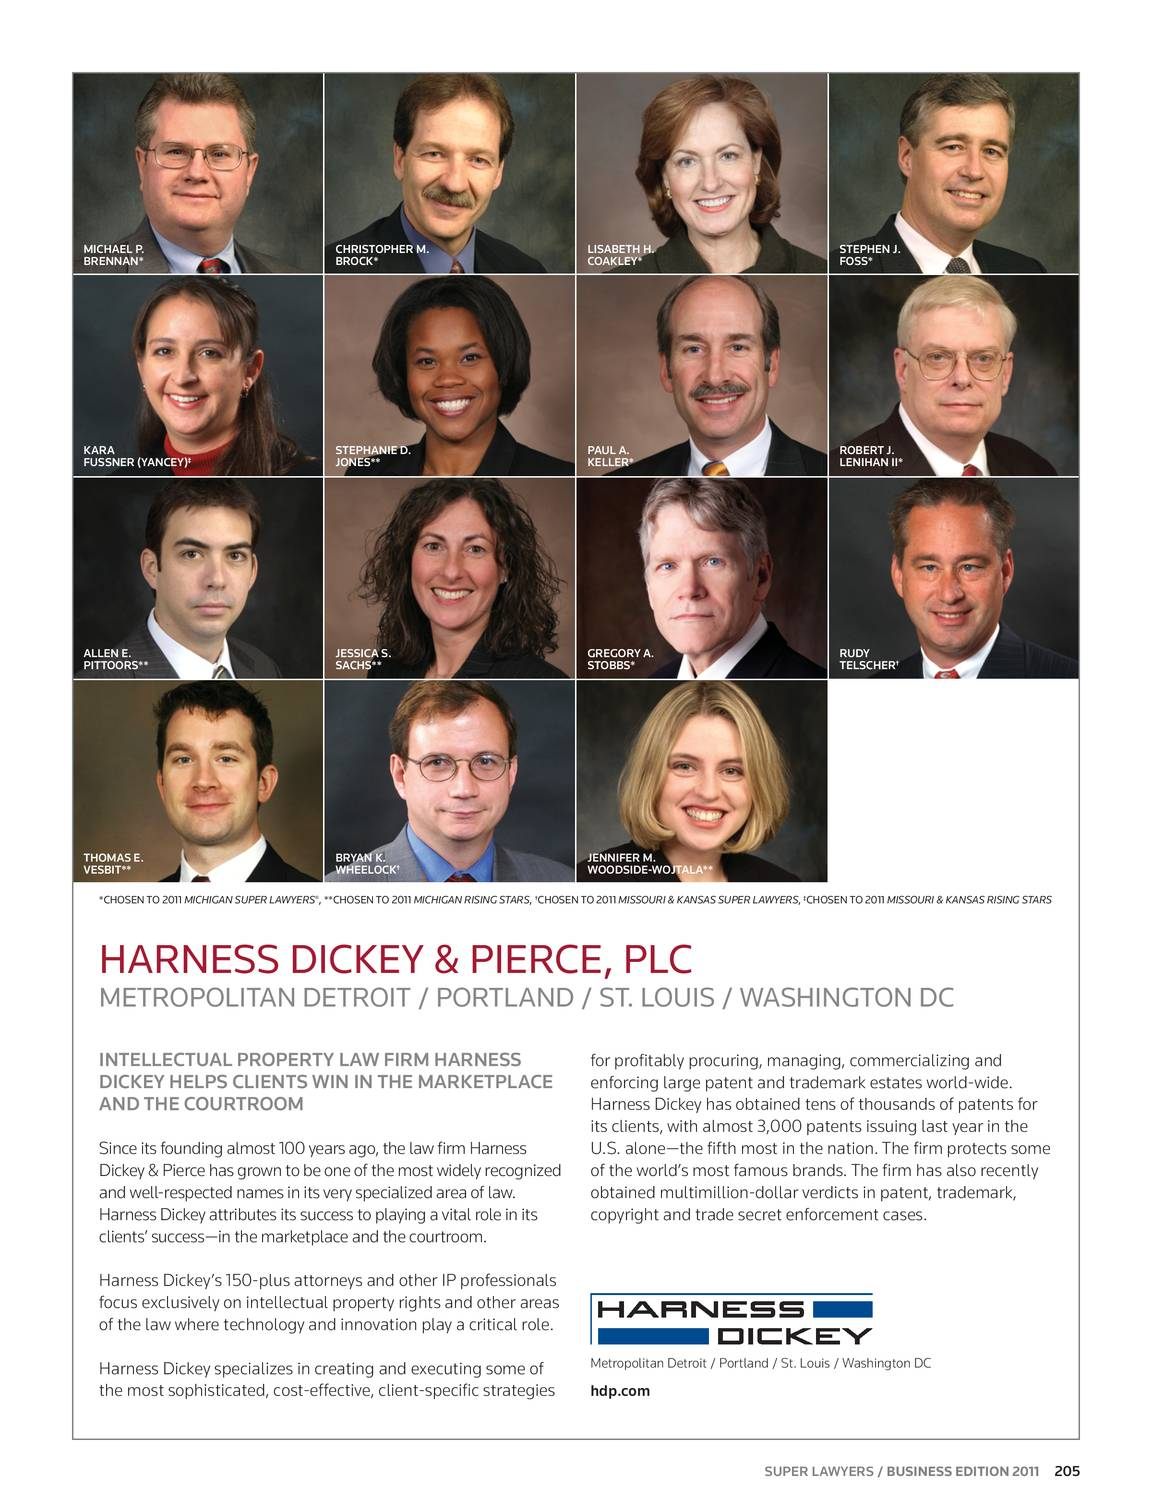 Super Lawyers - Business Edition 2011 - page 206